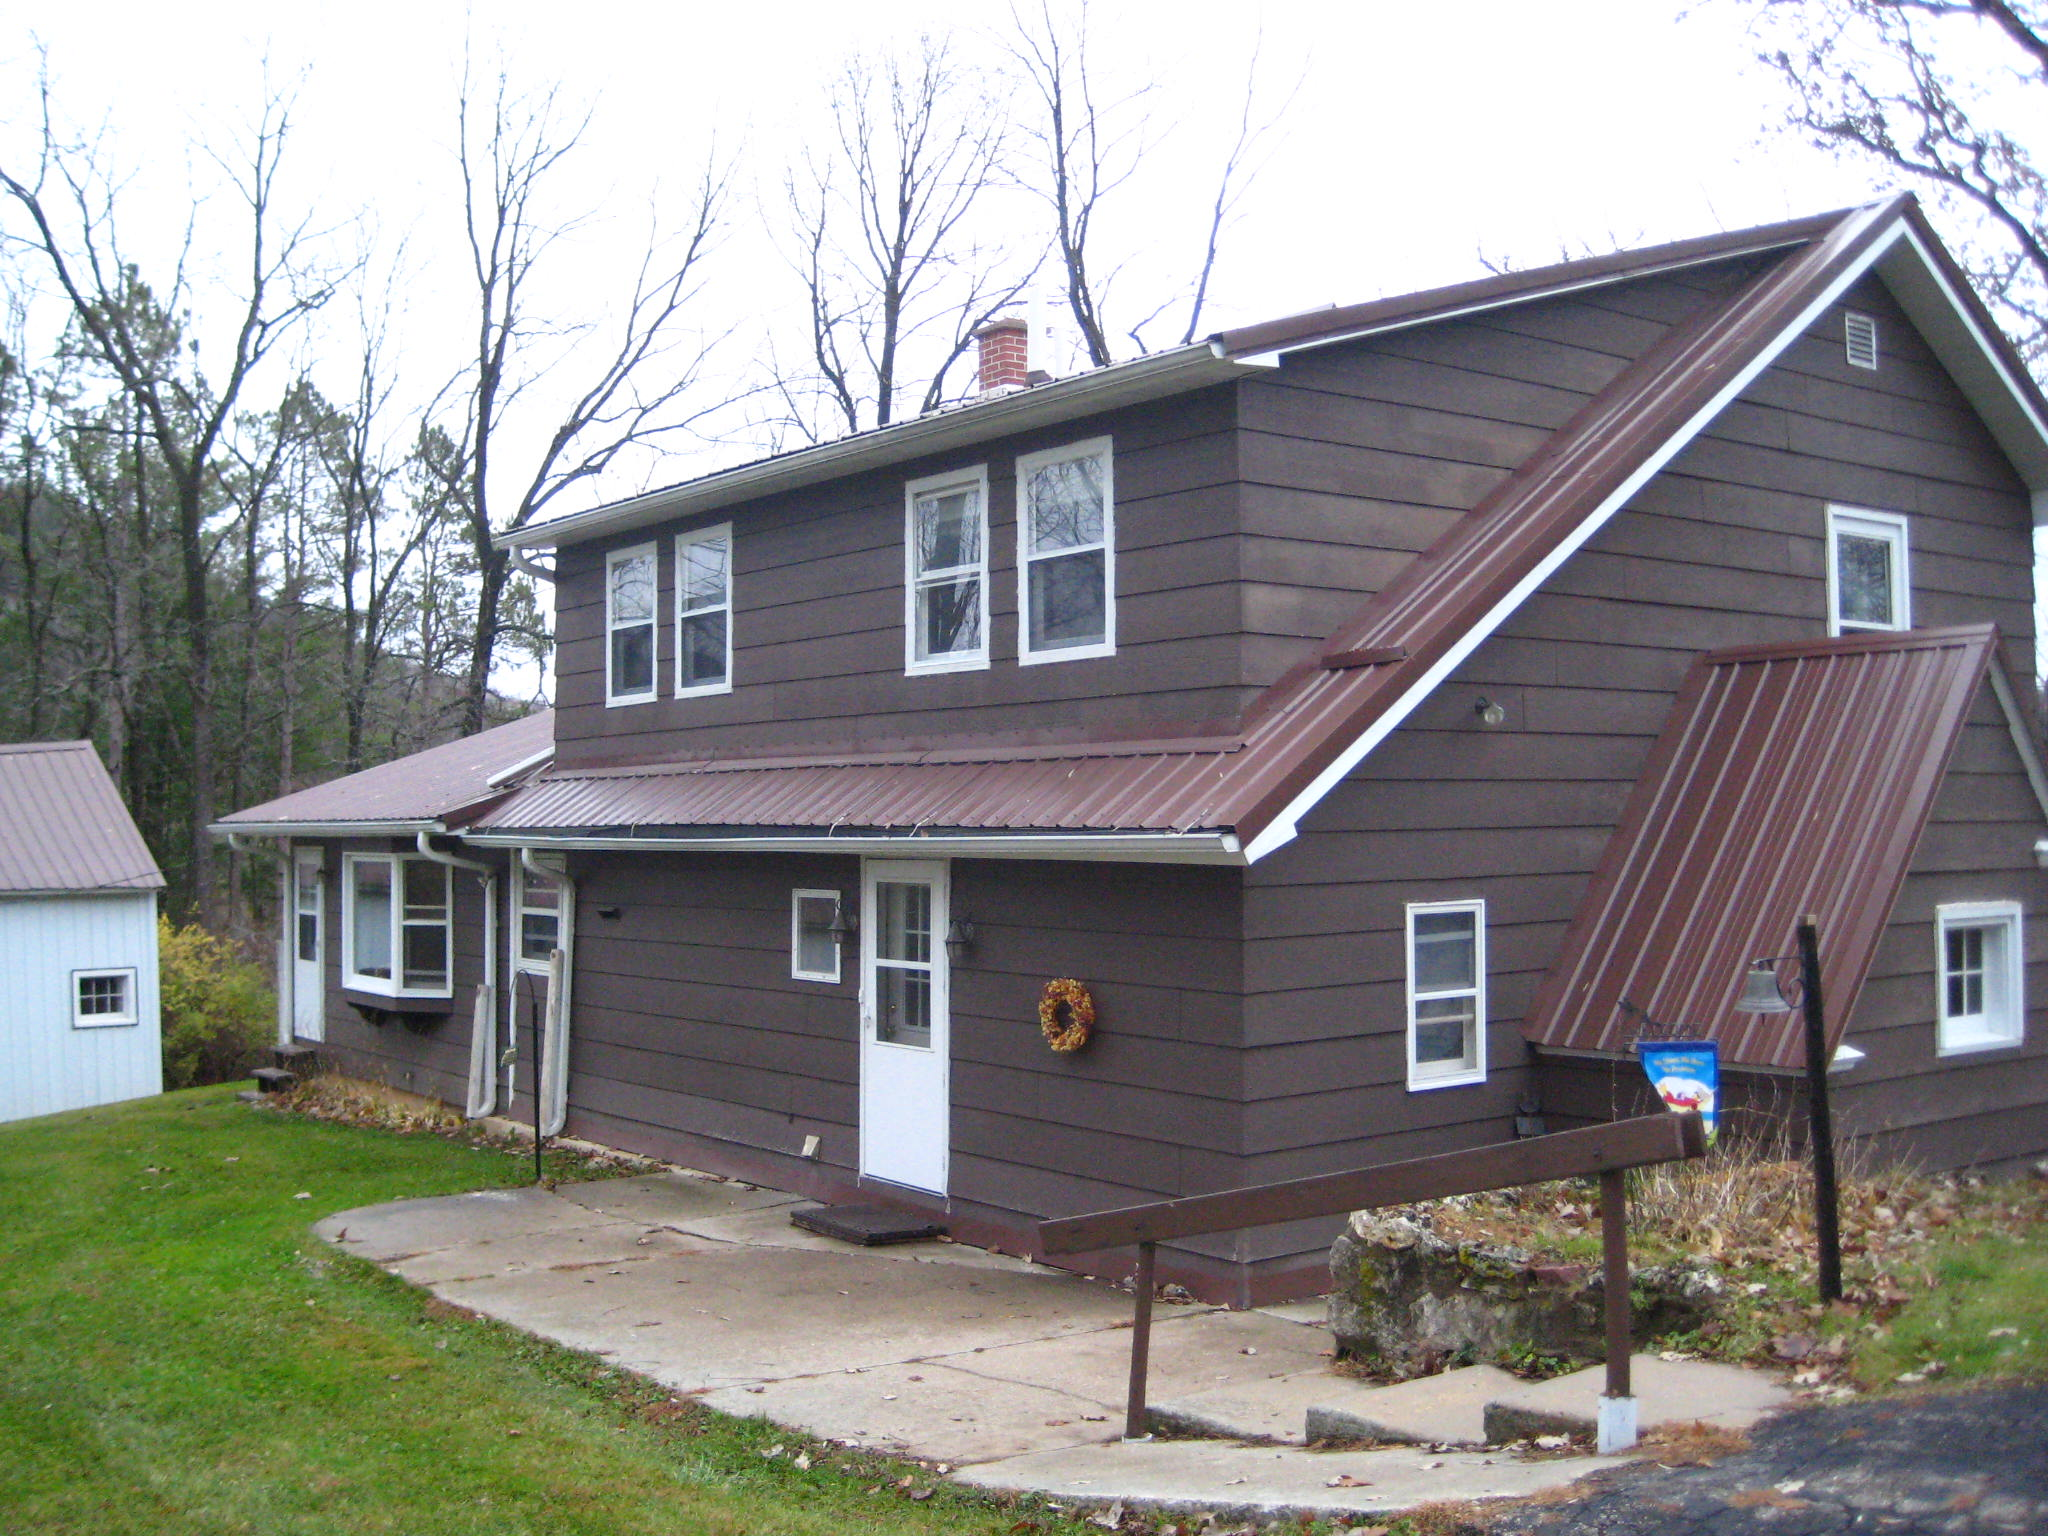 49585 Old Gays Rd., Gays Mills, Wisconsin 54631